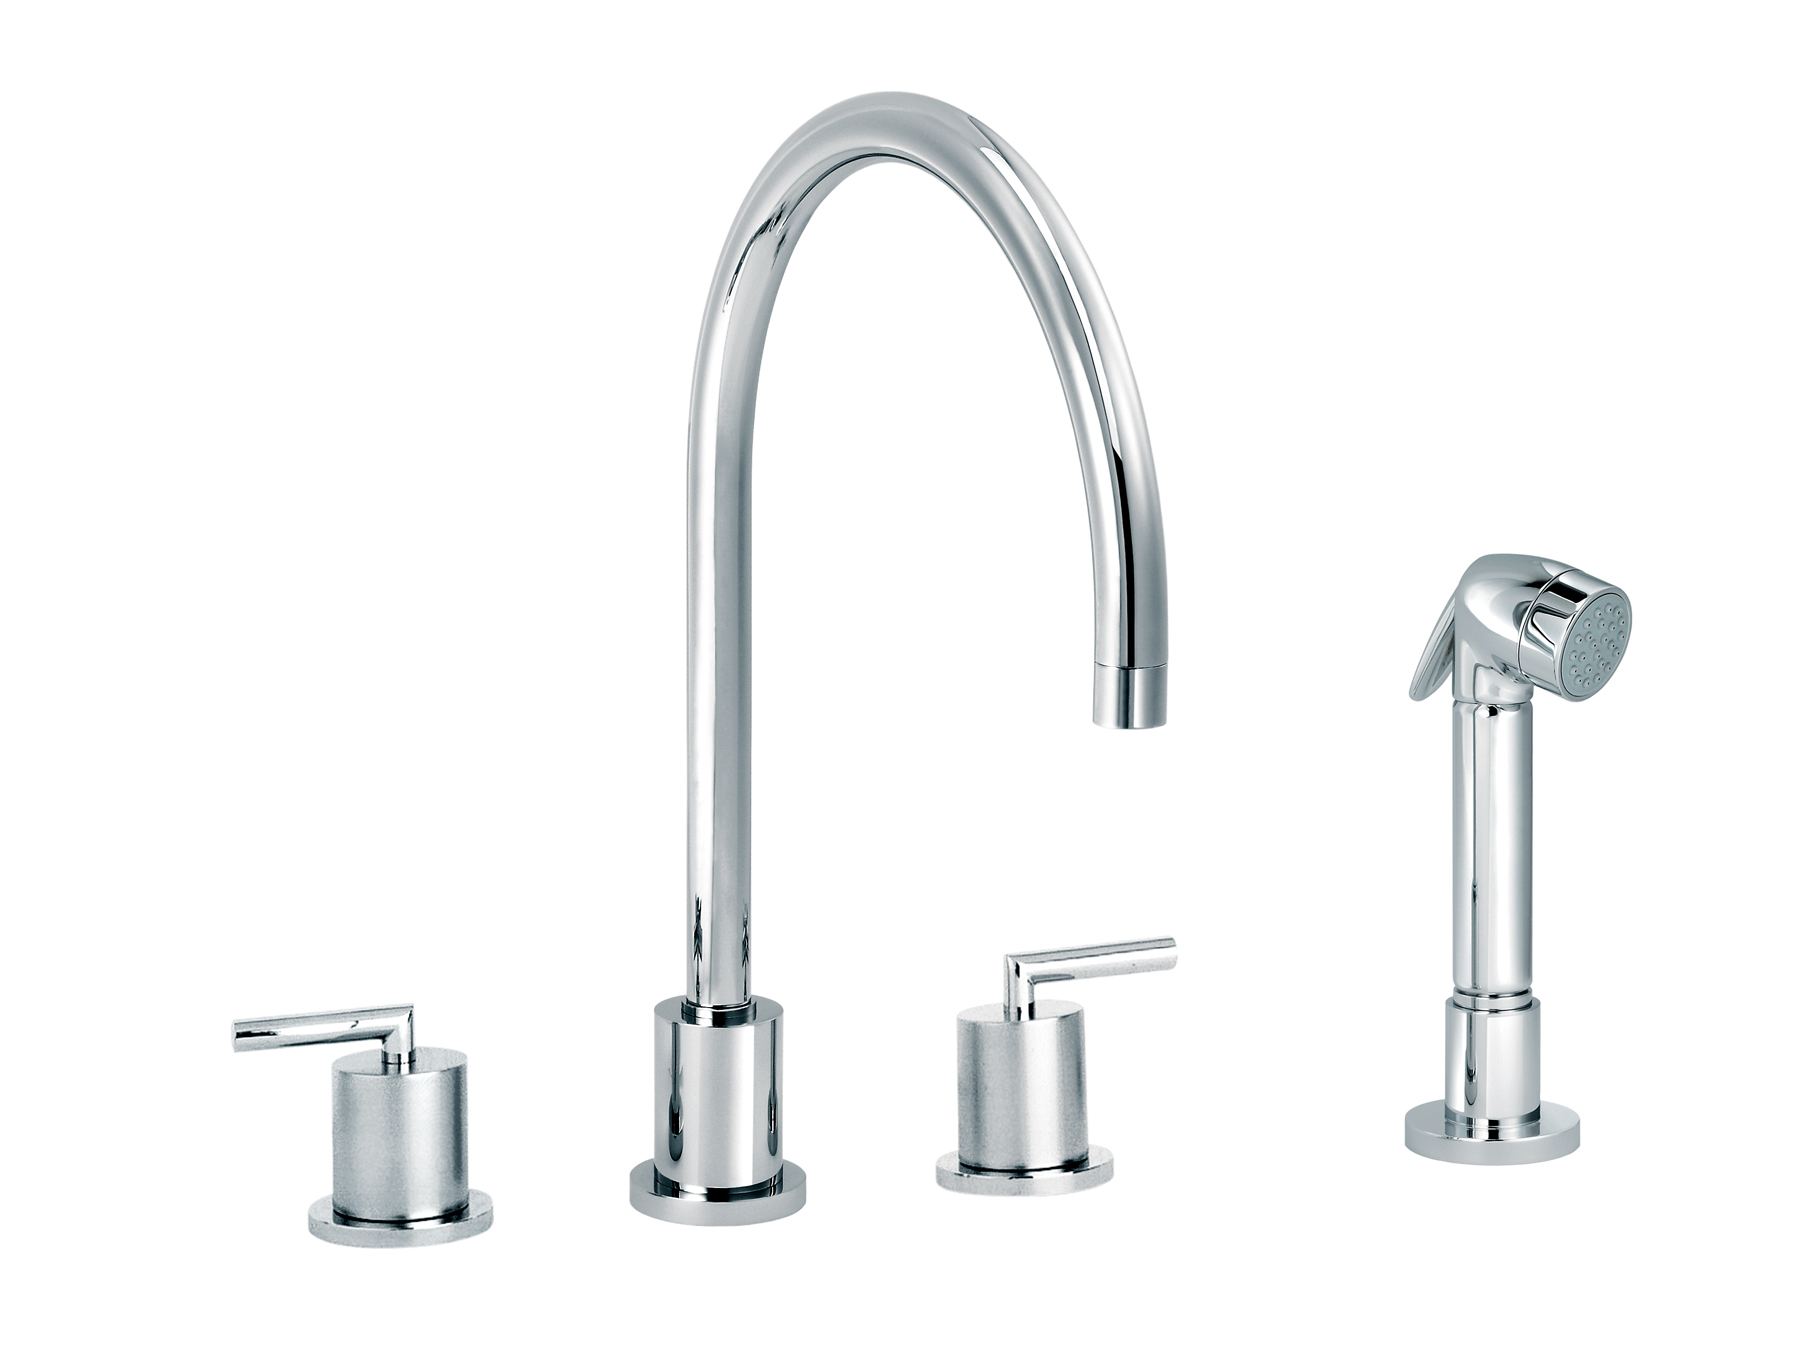 3-hole kitchen mixer, handshower 4031.--.28